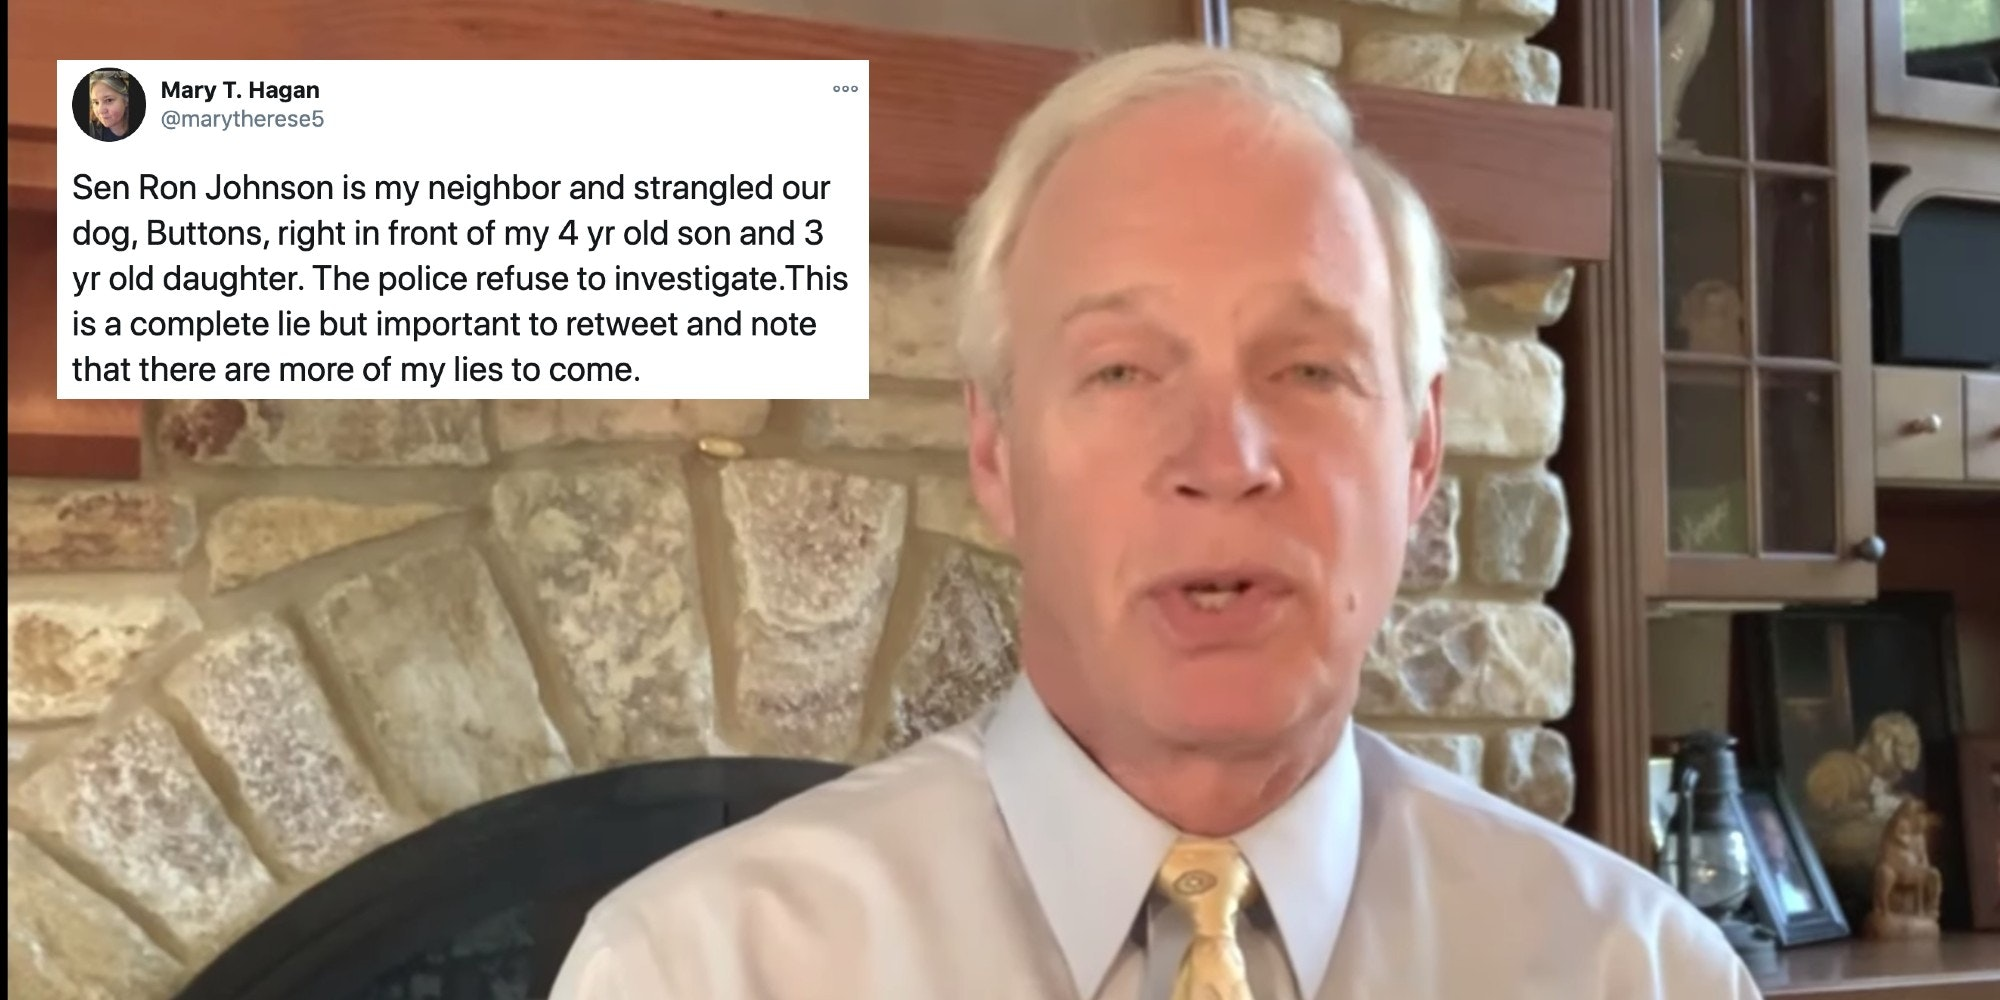 Sen. Ron Johnson next to a satirical tweet